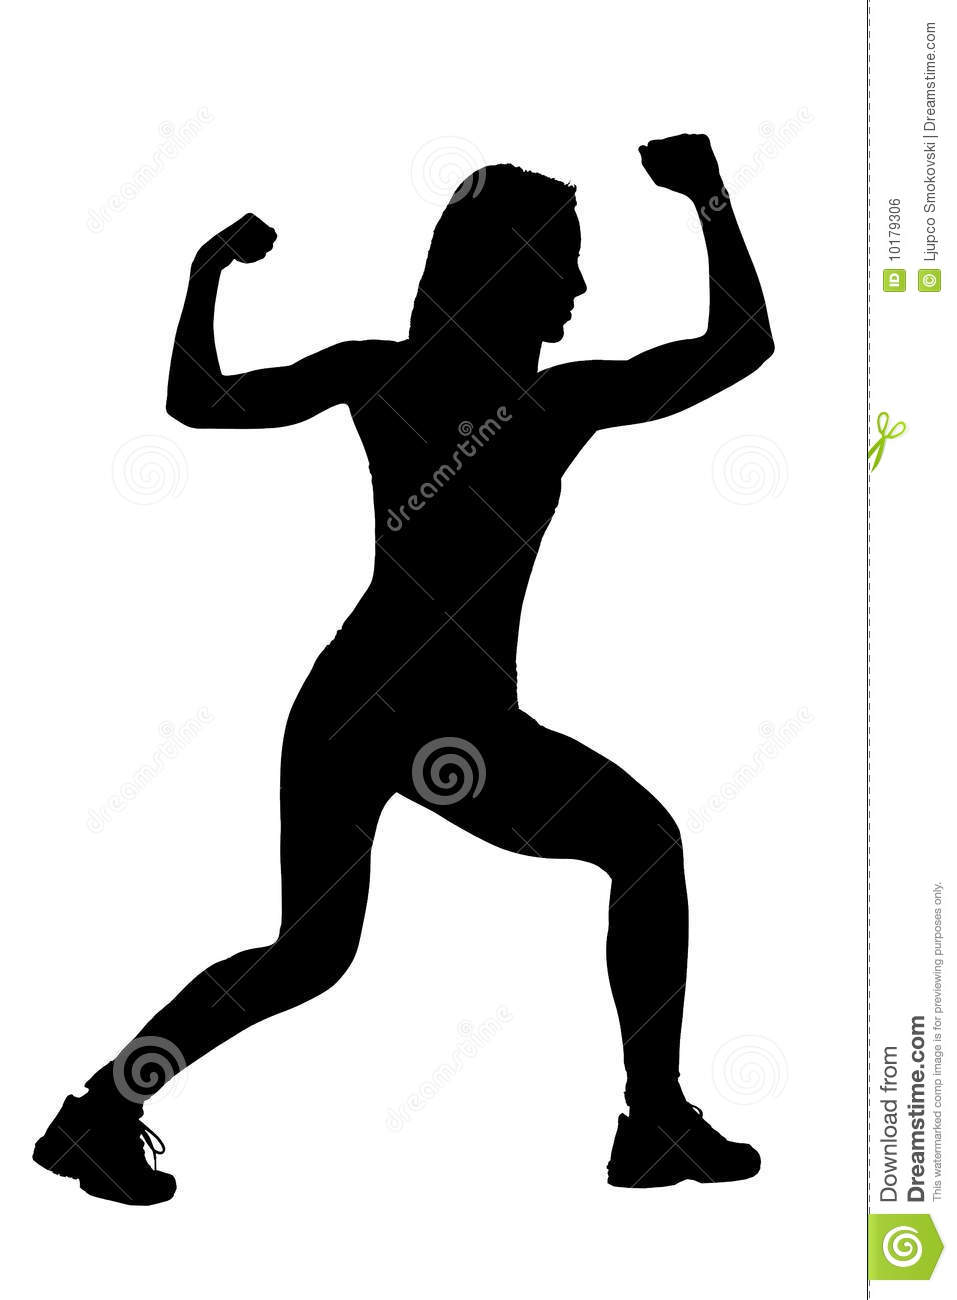 A Silhouette Of A Female Athlete Royalty Free Stock Image